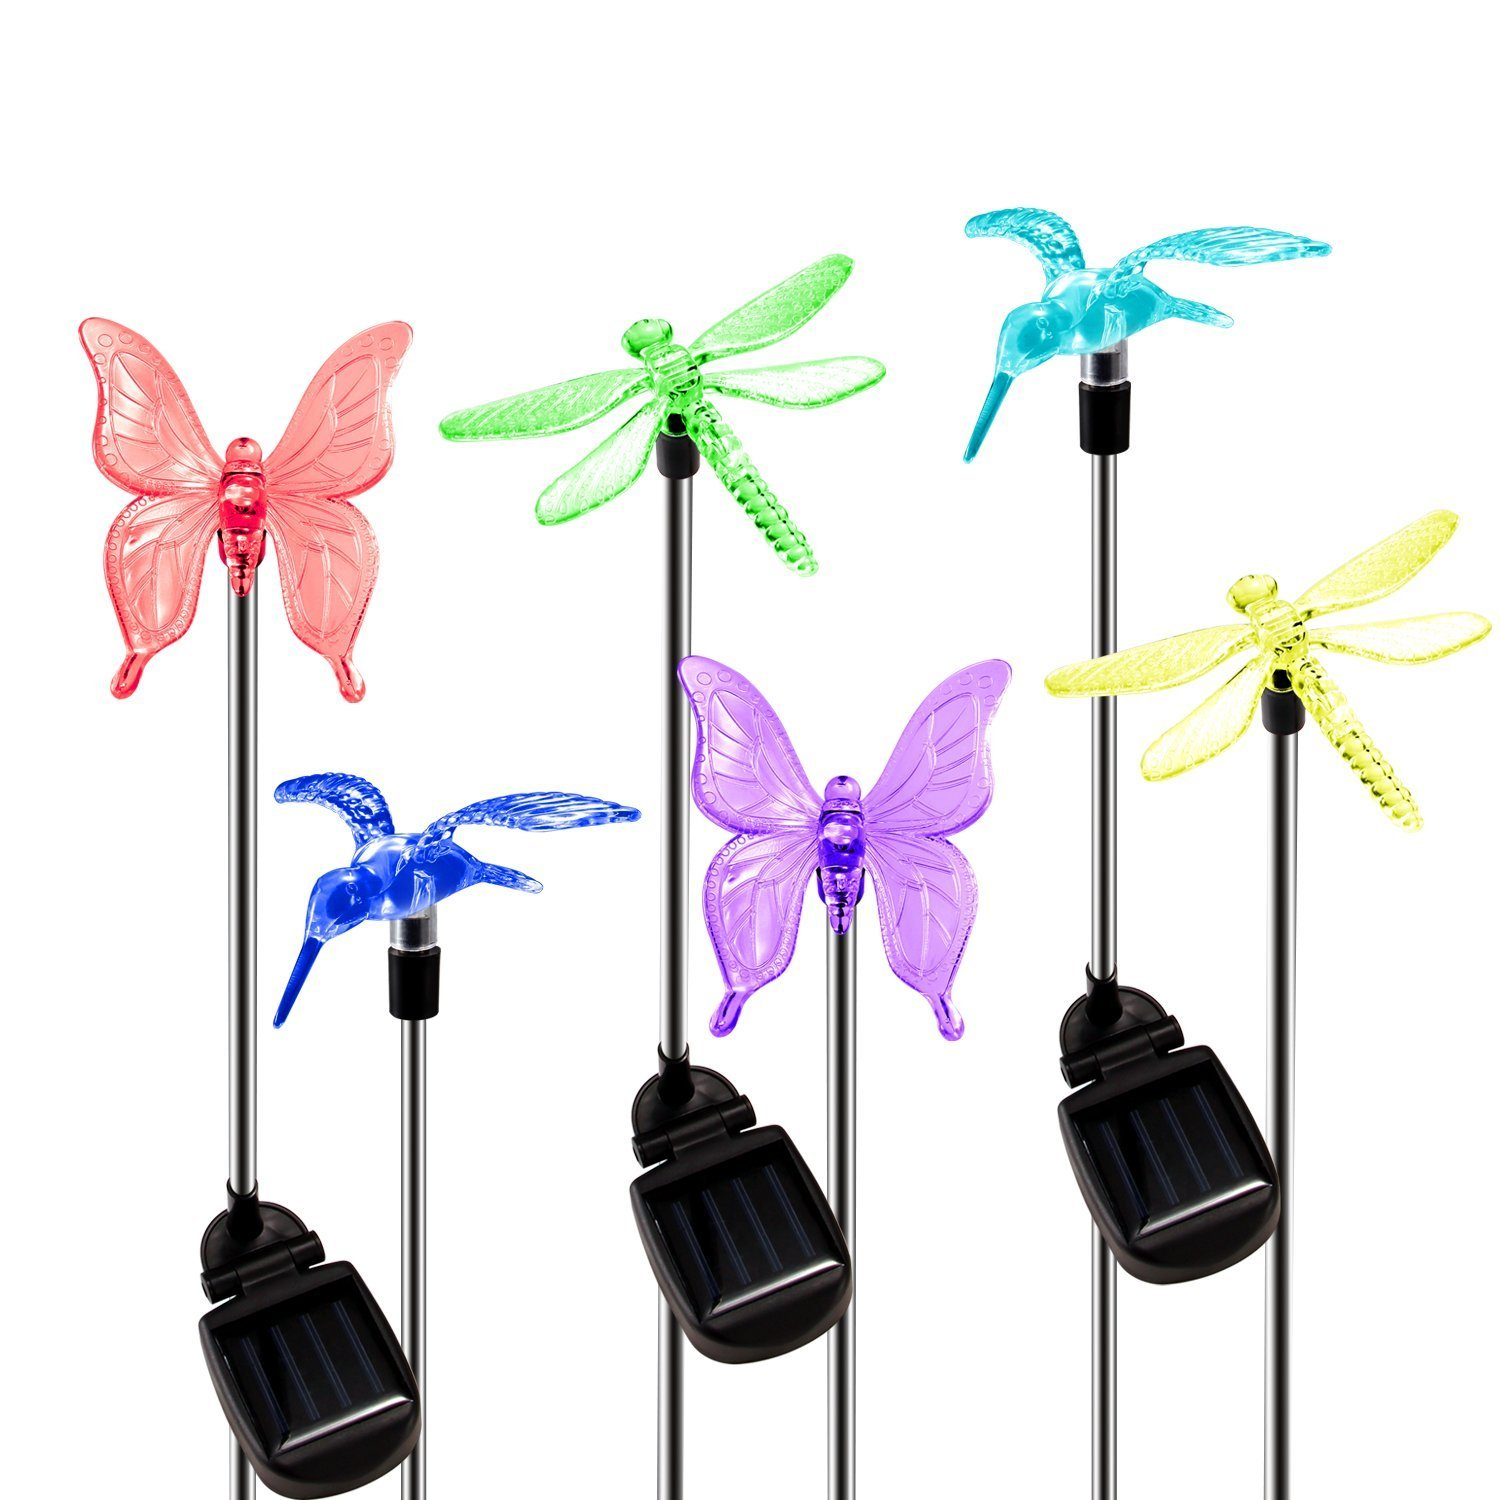 Solar Garden Lights Outdoor, 6-pack OxyLED Figurine Stake Light, Color Changing Decorative Landscape Lighting LED Solar Powered Hummingbird Butterfly Dragonfly for Patio Lawn Yard Pathway, Auto ON/OFF